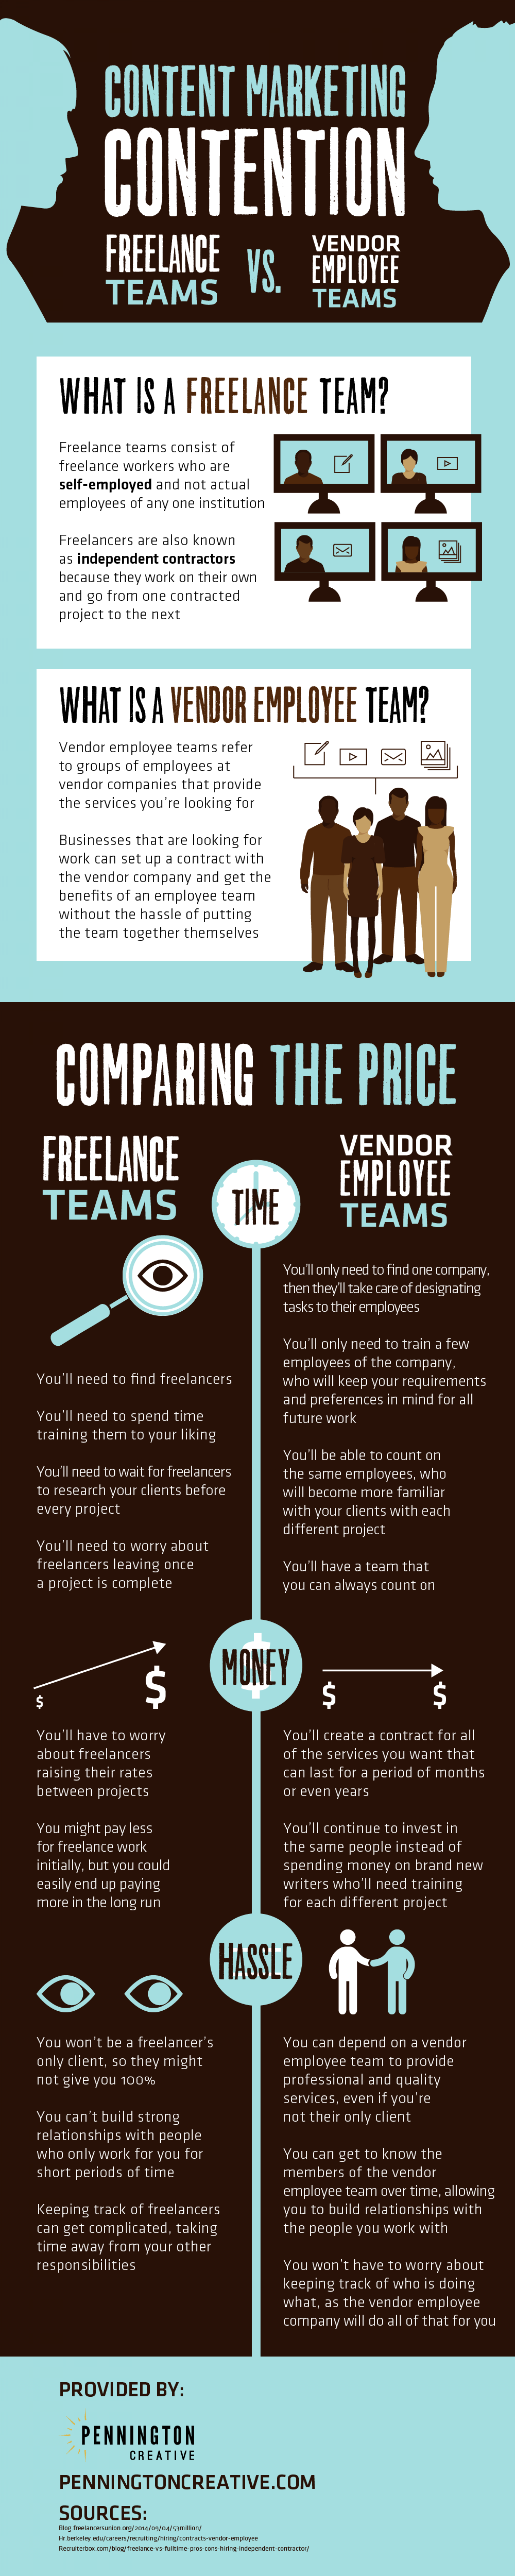 Content Marketing Contention: Freelance Teams vs. Vendor Employee Teams Infographic